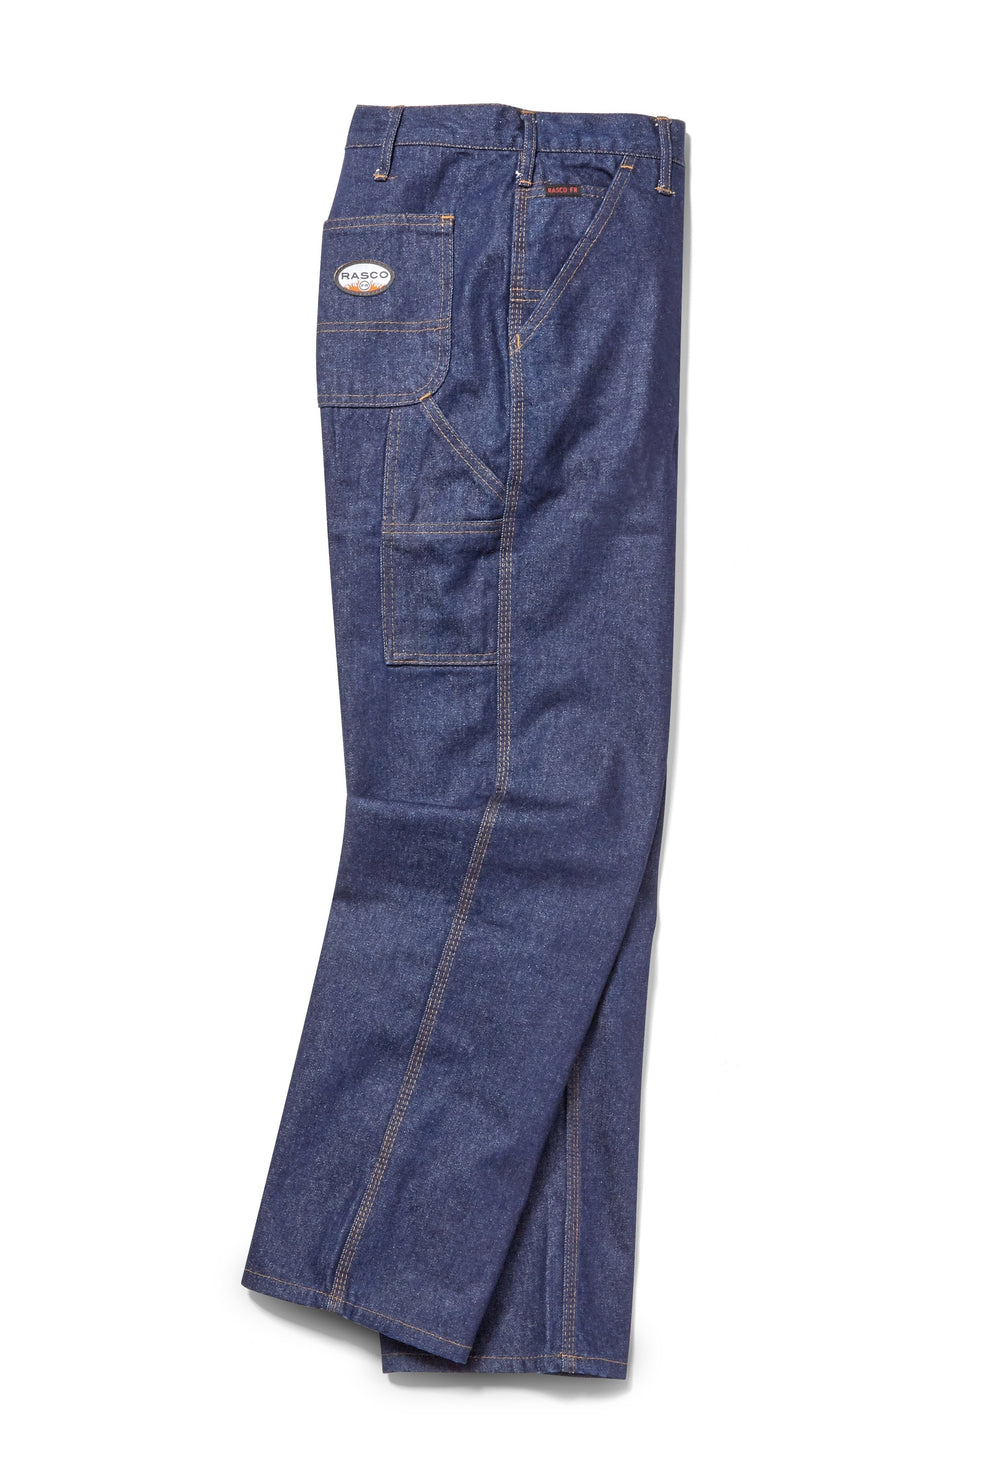 Mens Rasco Fire Resistant Denim Jeans 36 inch Inseam BLUE 54